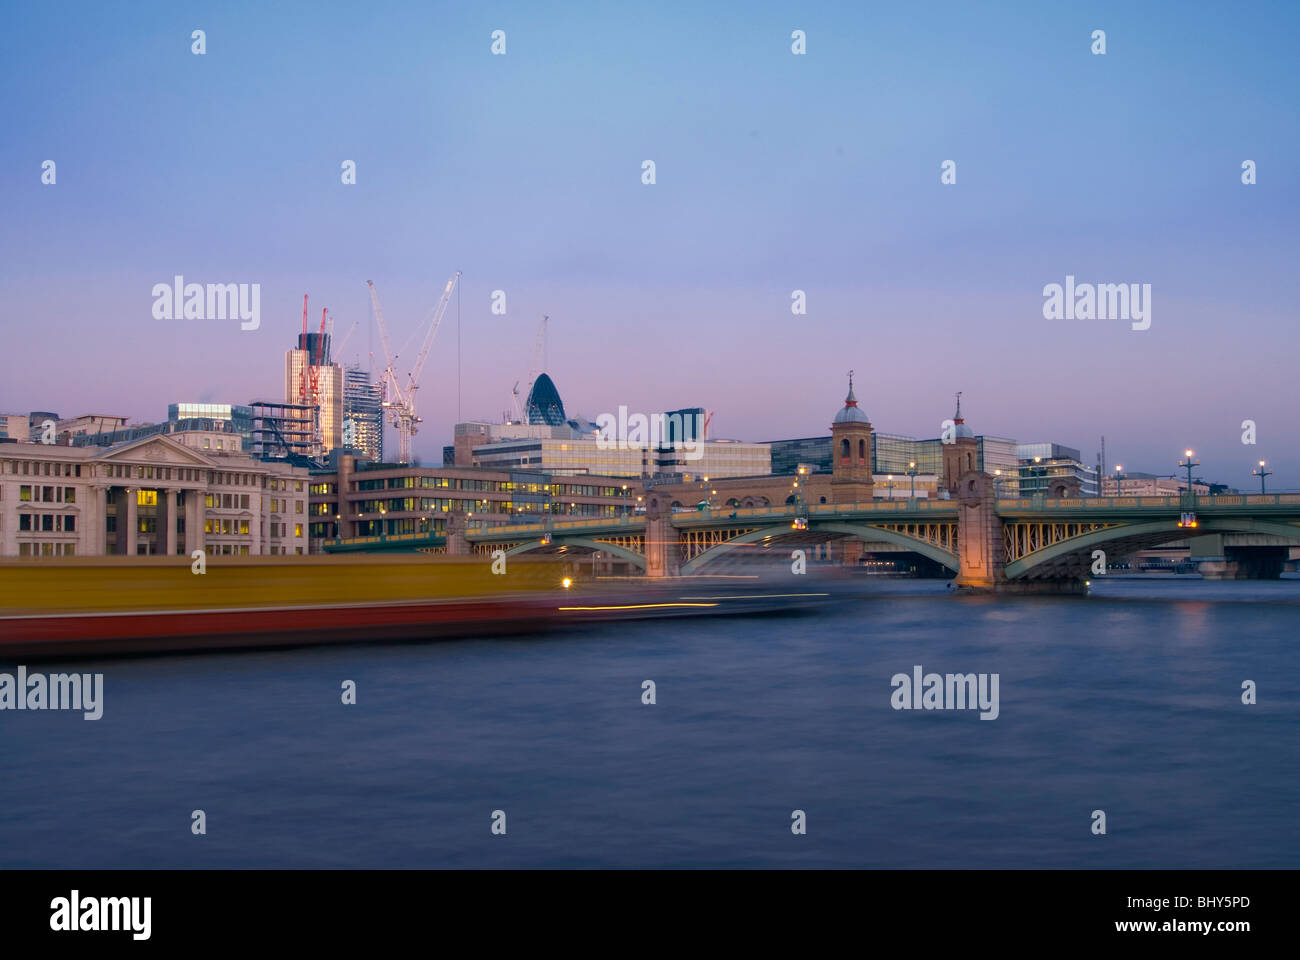 Southwark Bridge in central London looking from the South Bank at early evening with a boat traveling past leaving - Stock Image